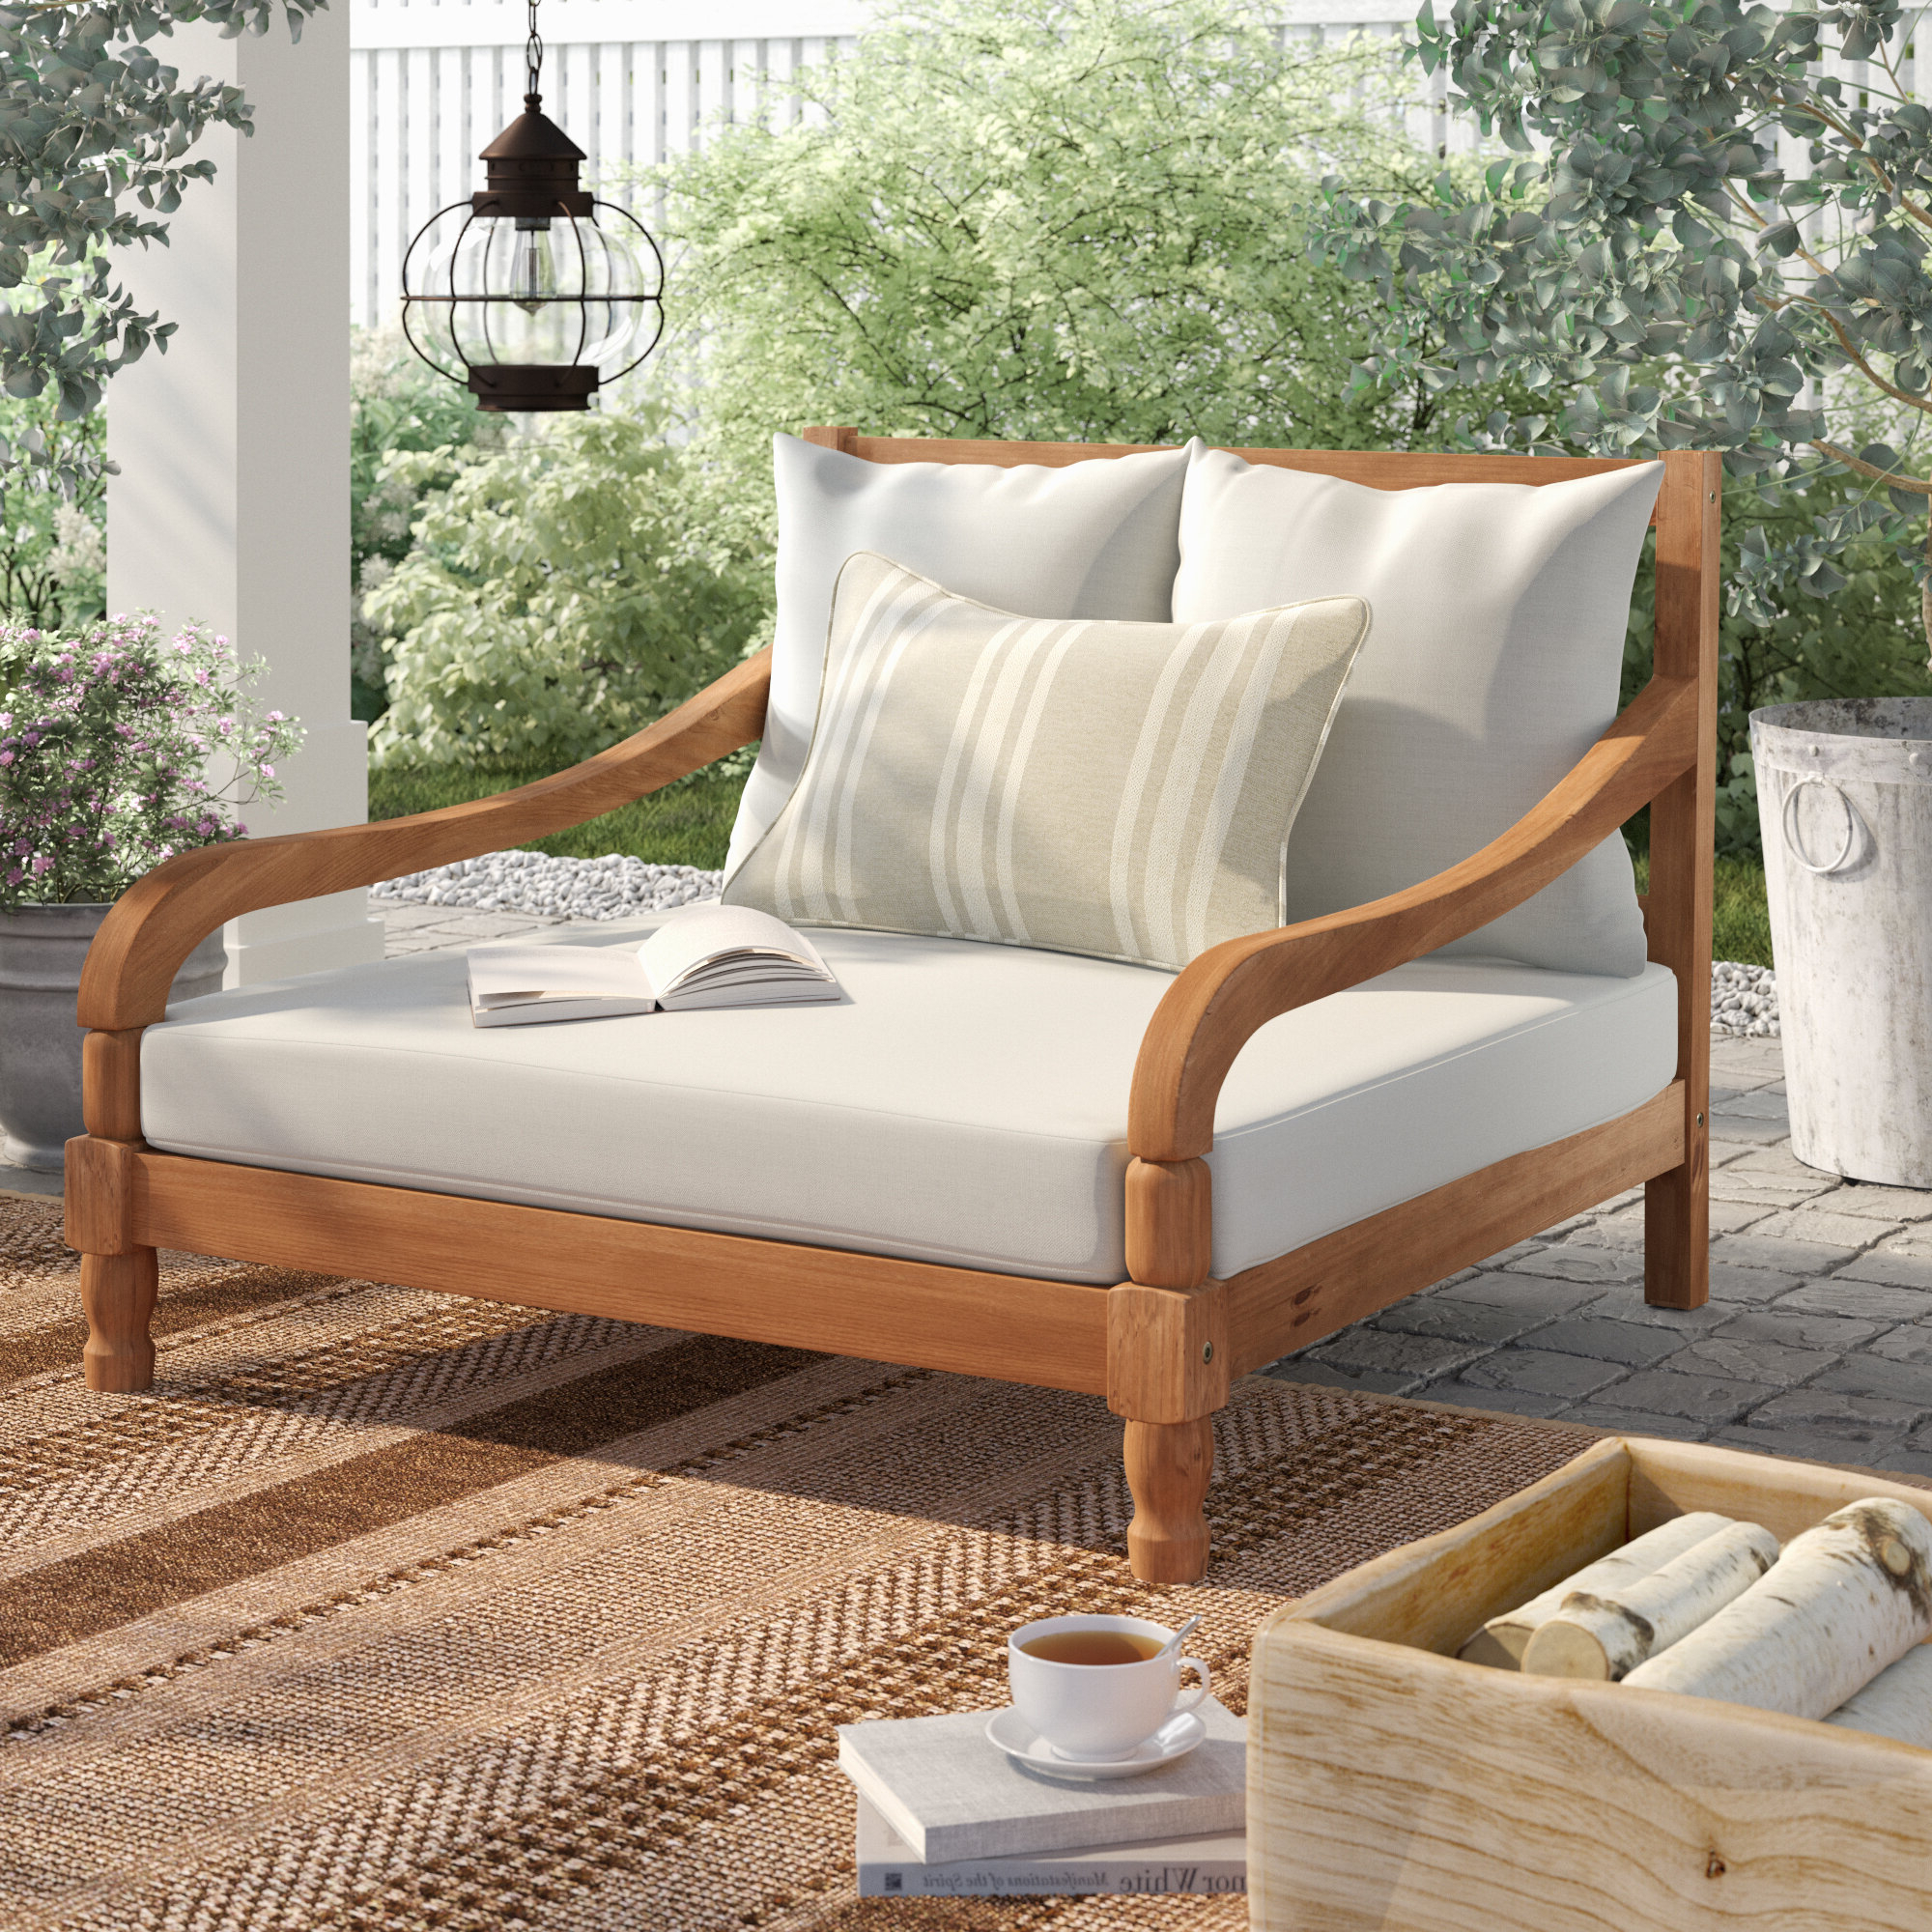 Famous Wiest Double Chaise Lounge With Cushion Throughout Wood Blue And White Cushion Outdoor Chaise Lounge Chairs (View 8 of 25)